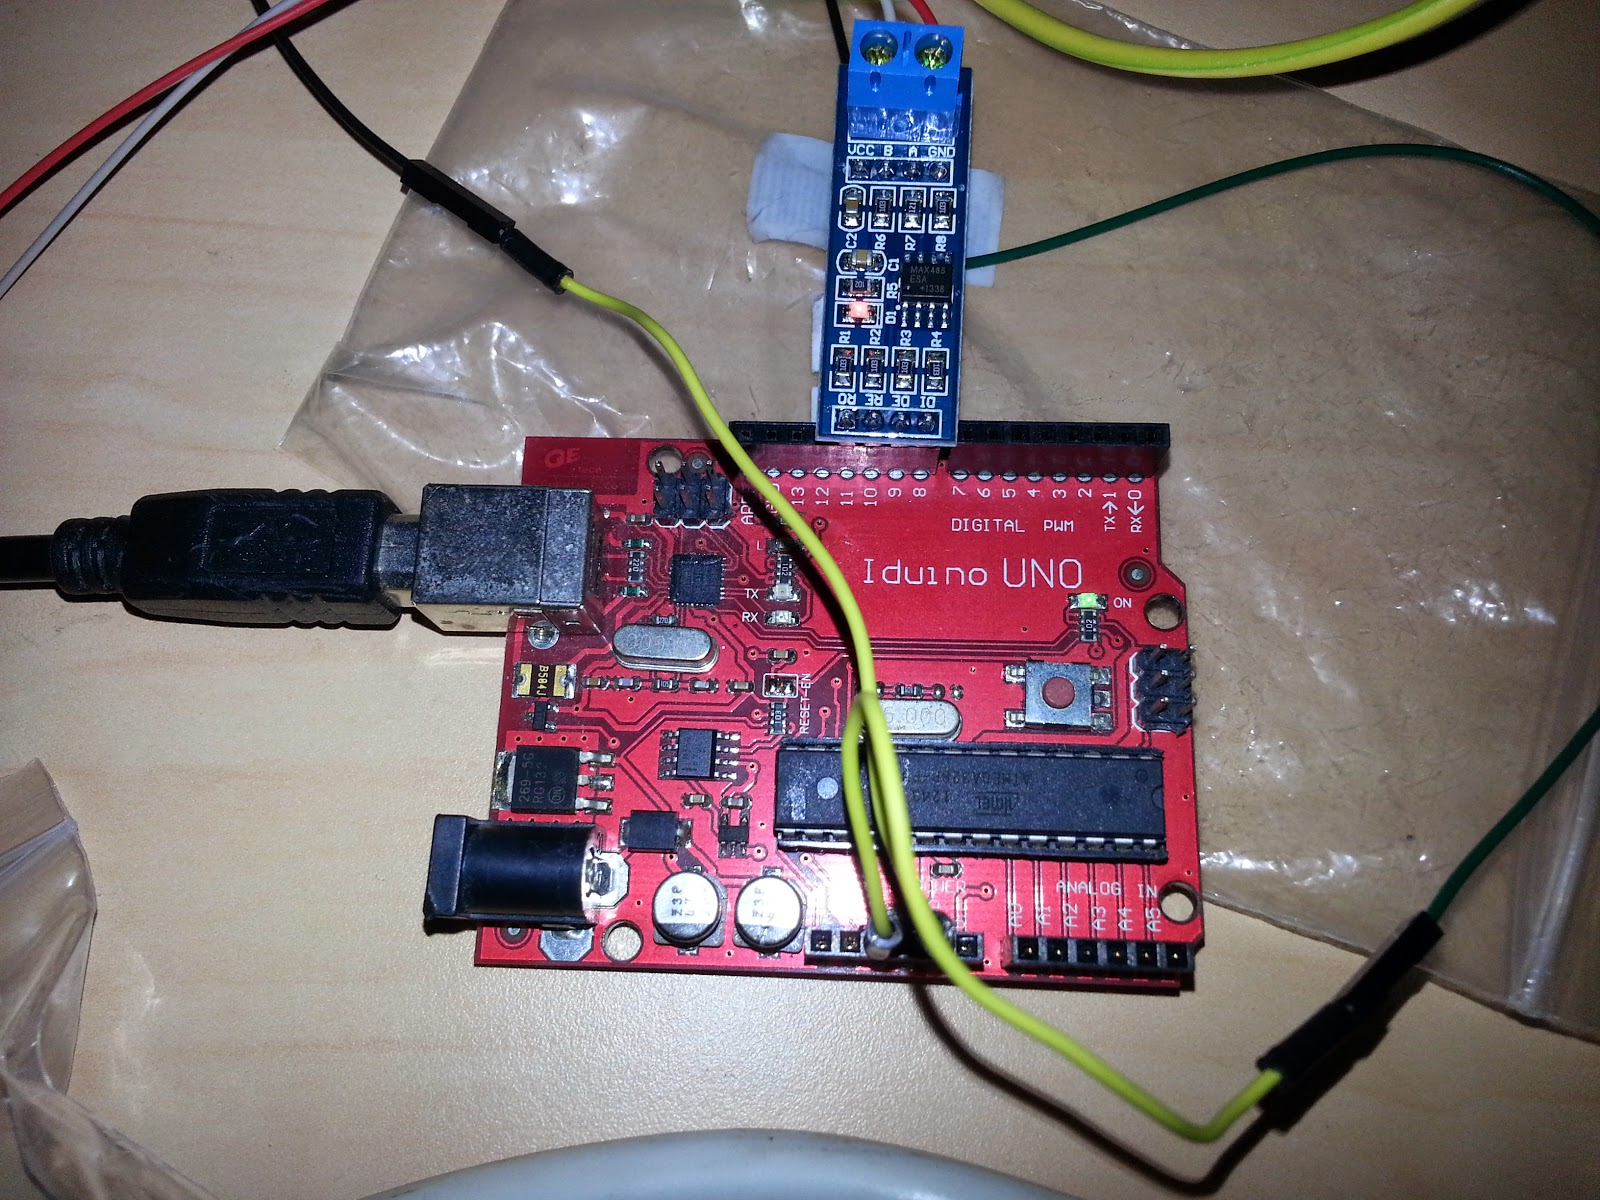 VFD control with Arduino using RS485 link